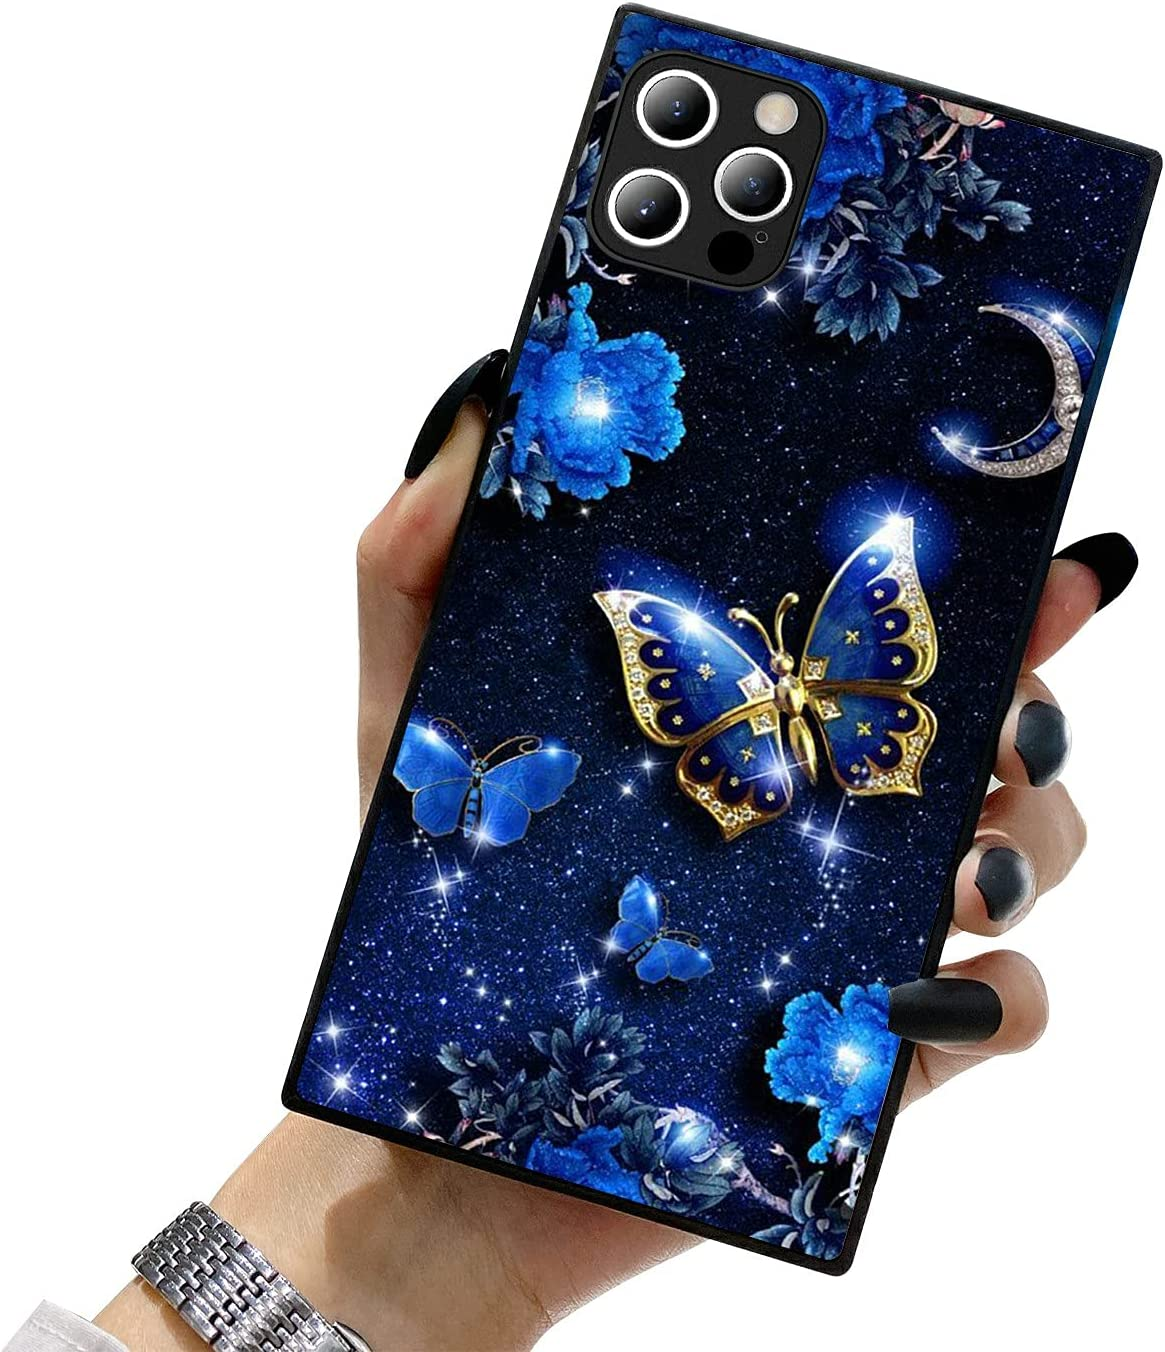 ZhuxuxiTT Compatible with iPhone 12 Case Square,Elegant Blue Butterfly iPhone 12 Pro Cases for Girls Women,Fashion Pattern Hard PC Back&Soft TPU Bumper Frame Support Case for iPhone 12/12 Pro